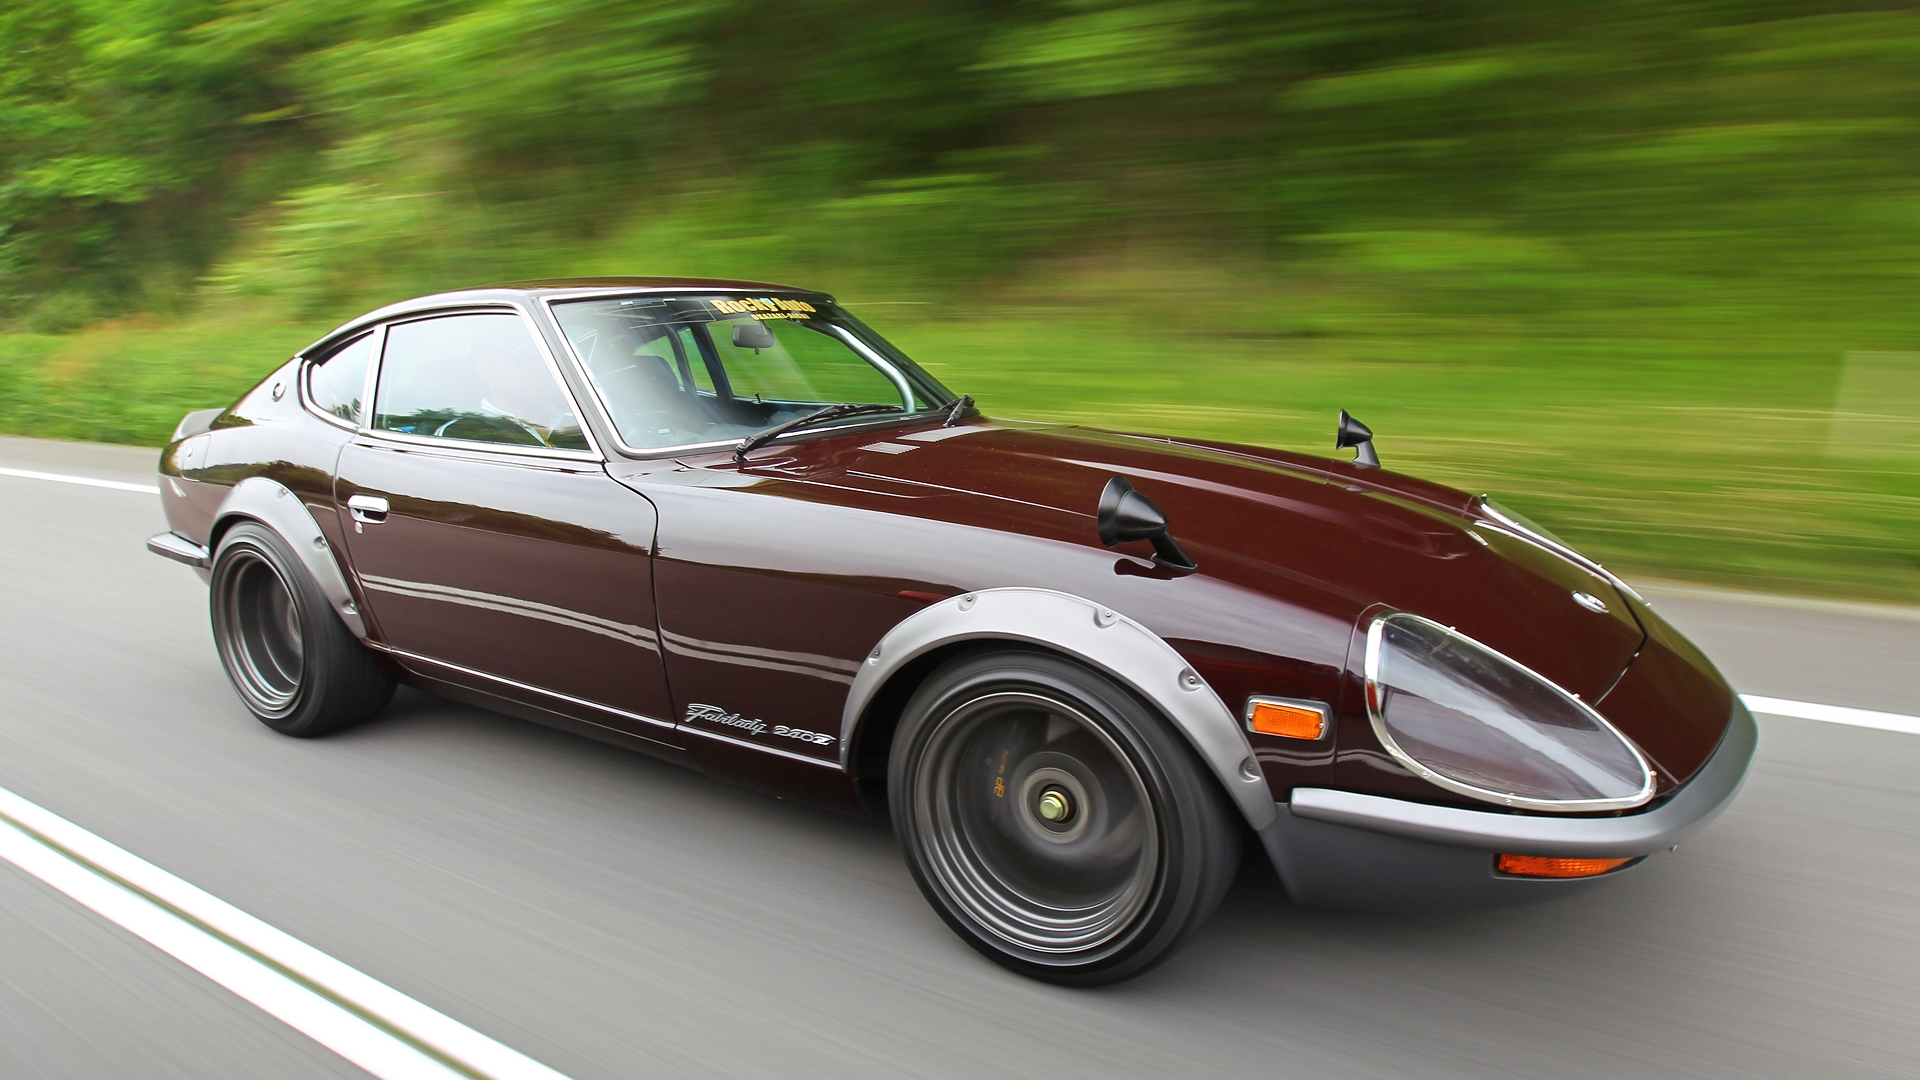 Cool Modified Cars Wallpapers 3 Nissan Fairlady Z Hd Wallpapers Background Images